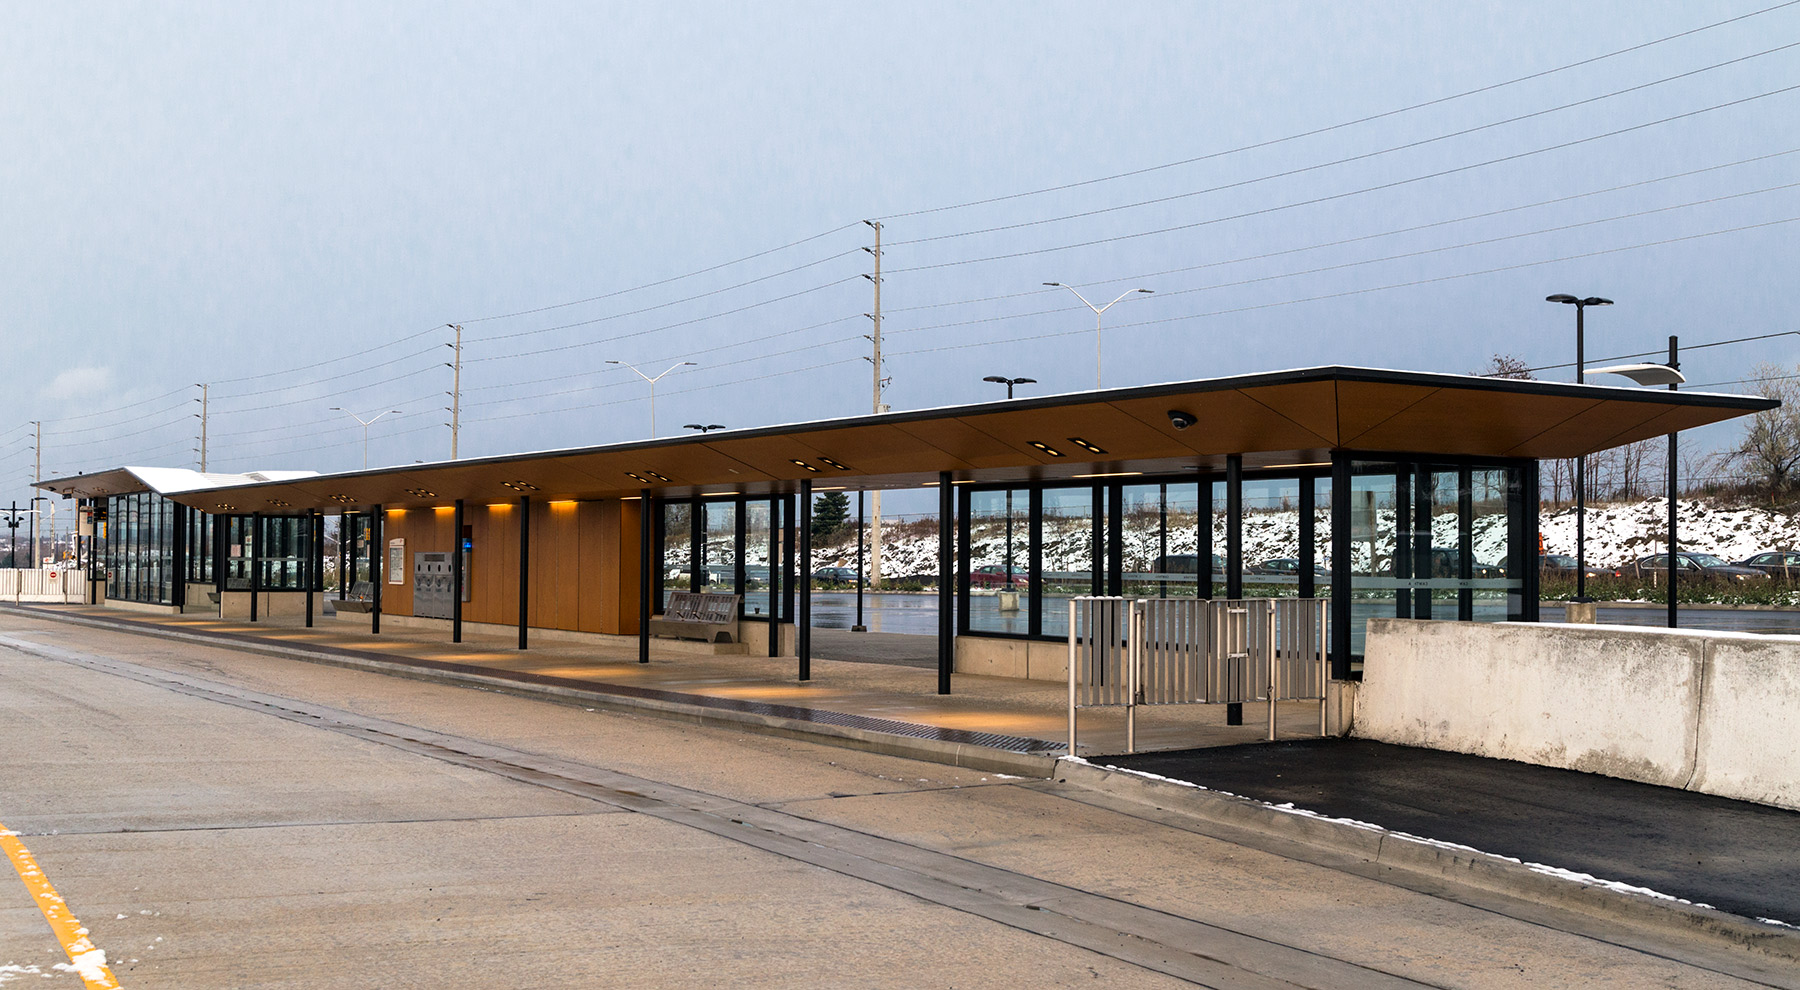 20141118. The brand new Mississauga Transitway (bus rapid transi